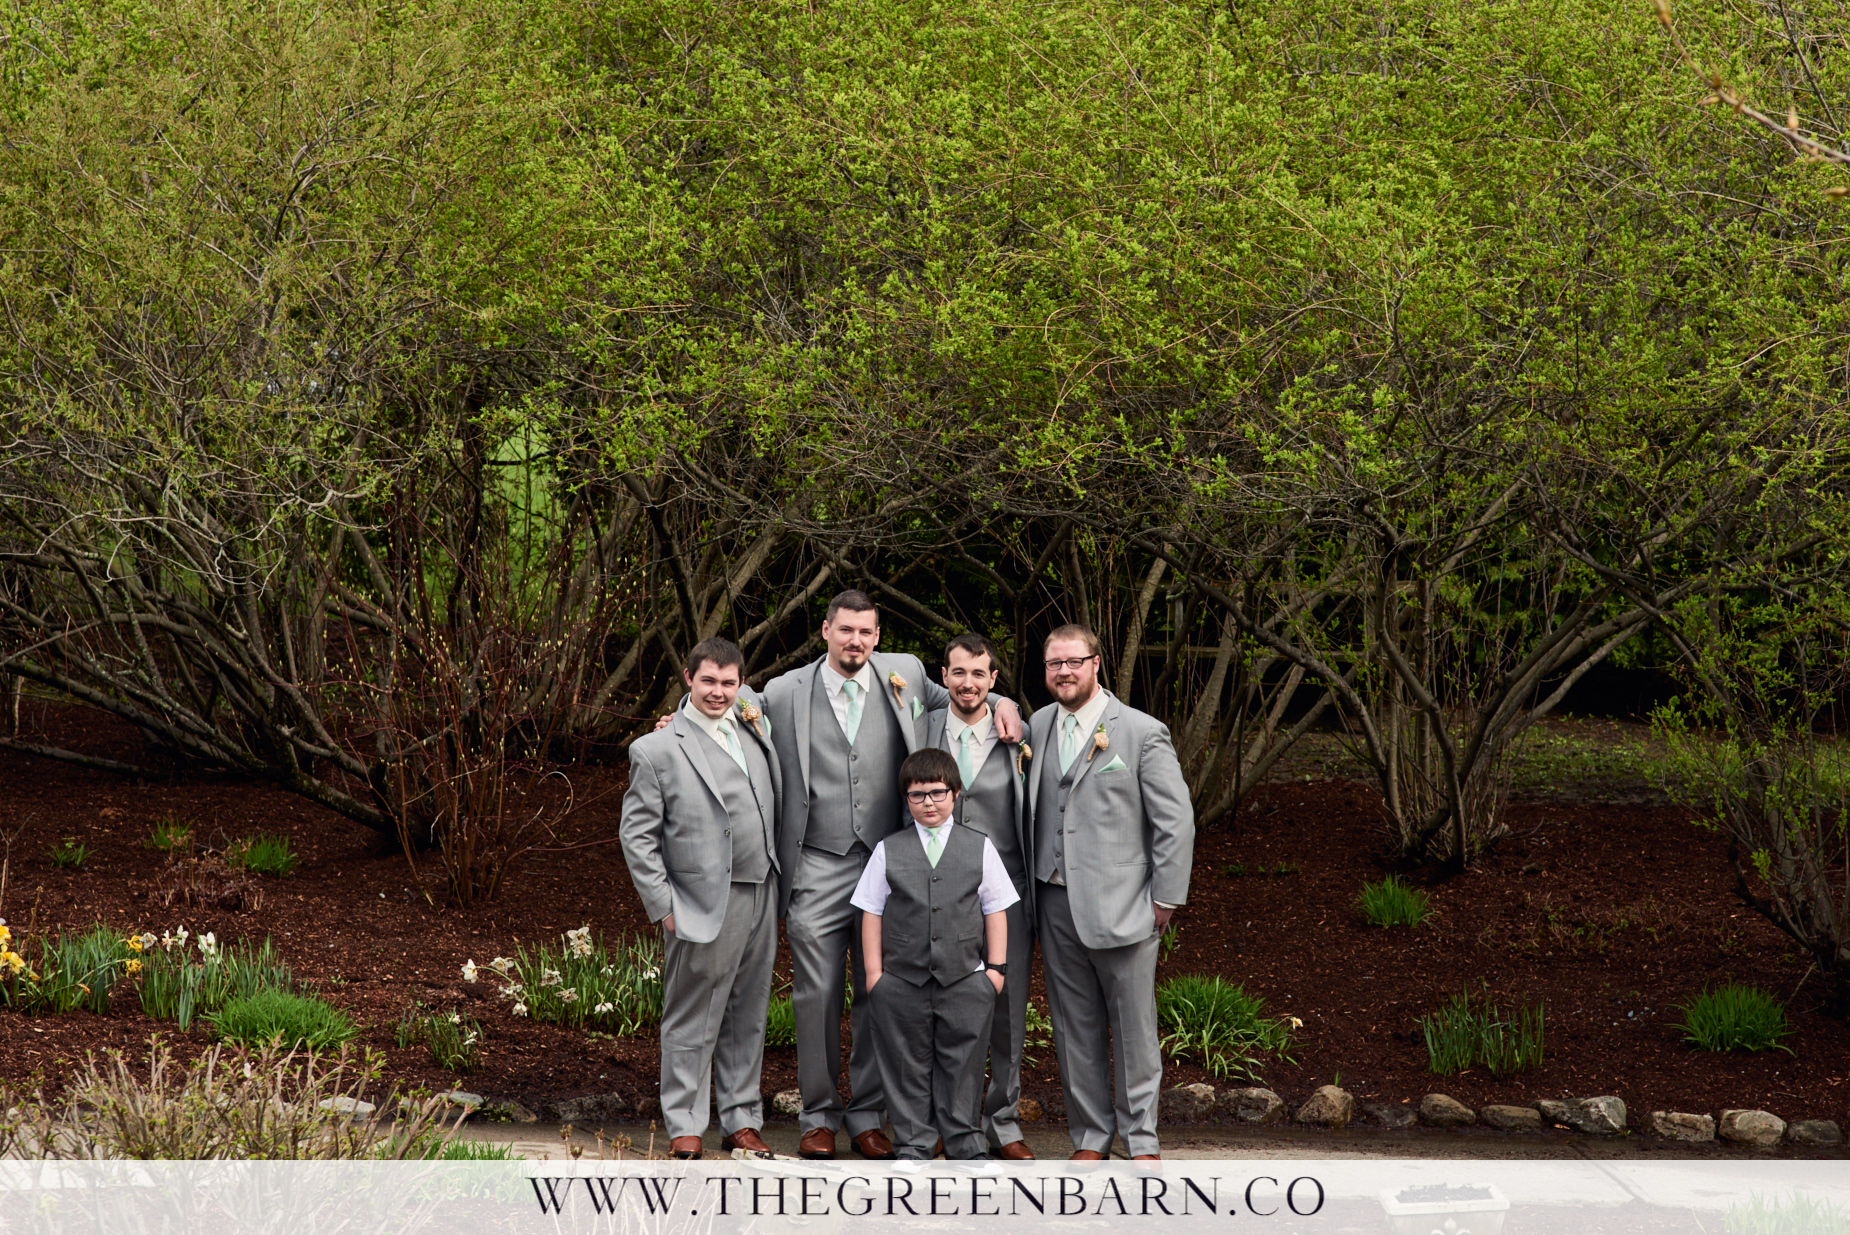 Groom with Groomsmen and Ring Bearer in Grey Suits with Sea Foam Green Tie and Pocket Square